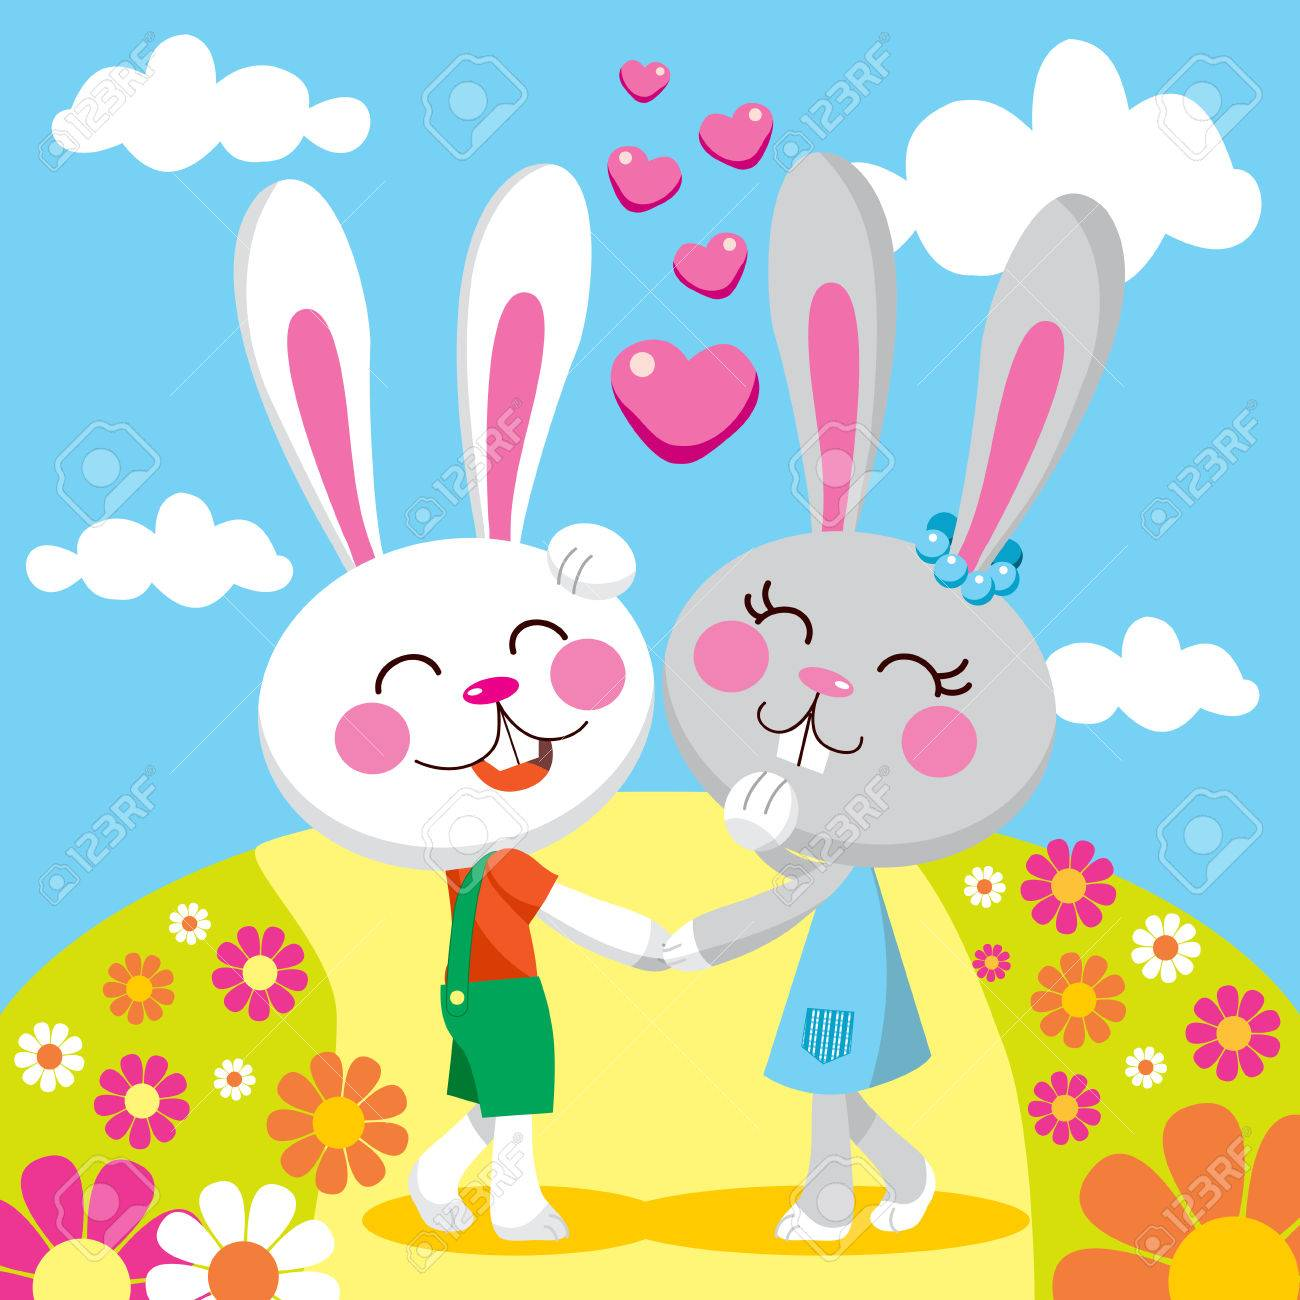 Sweet bunny couple holding hands on a date smiling and walking between flowers Stock Vector - 8629817